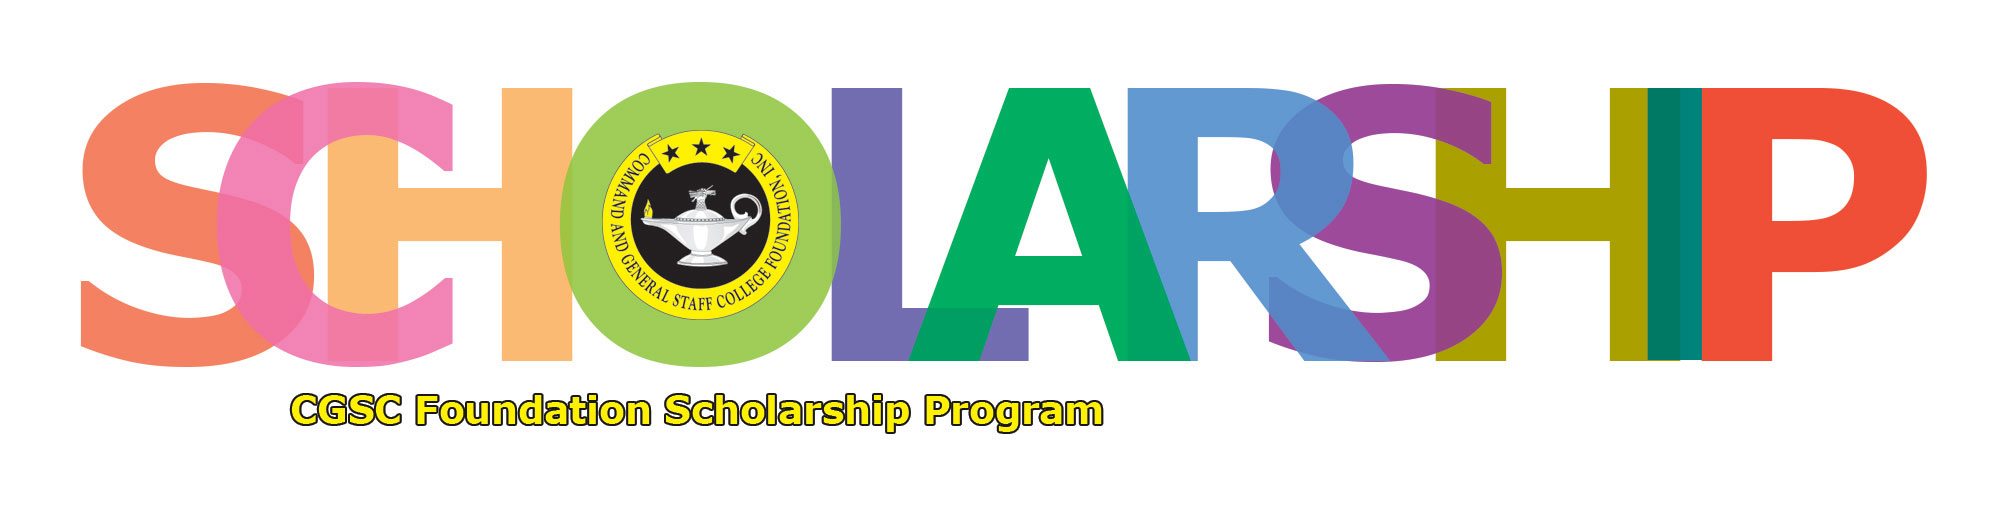 CGSCF Scholarship Program logo